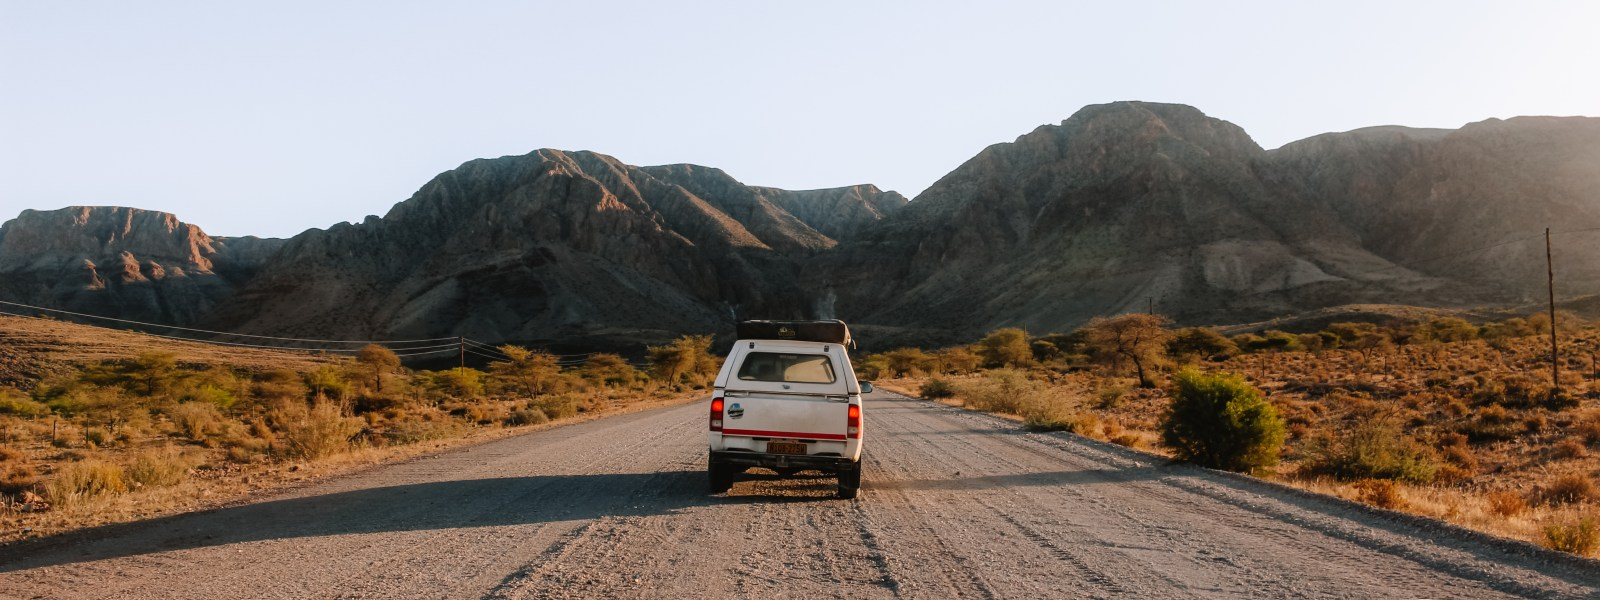 Renting a car in Namibia: self-drive, roads and rental tips